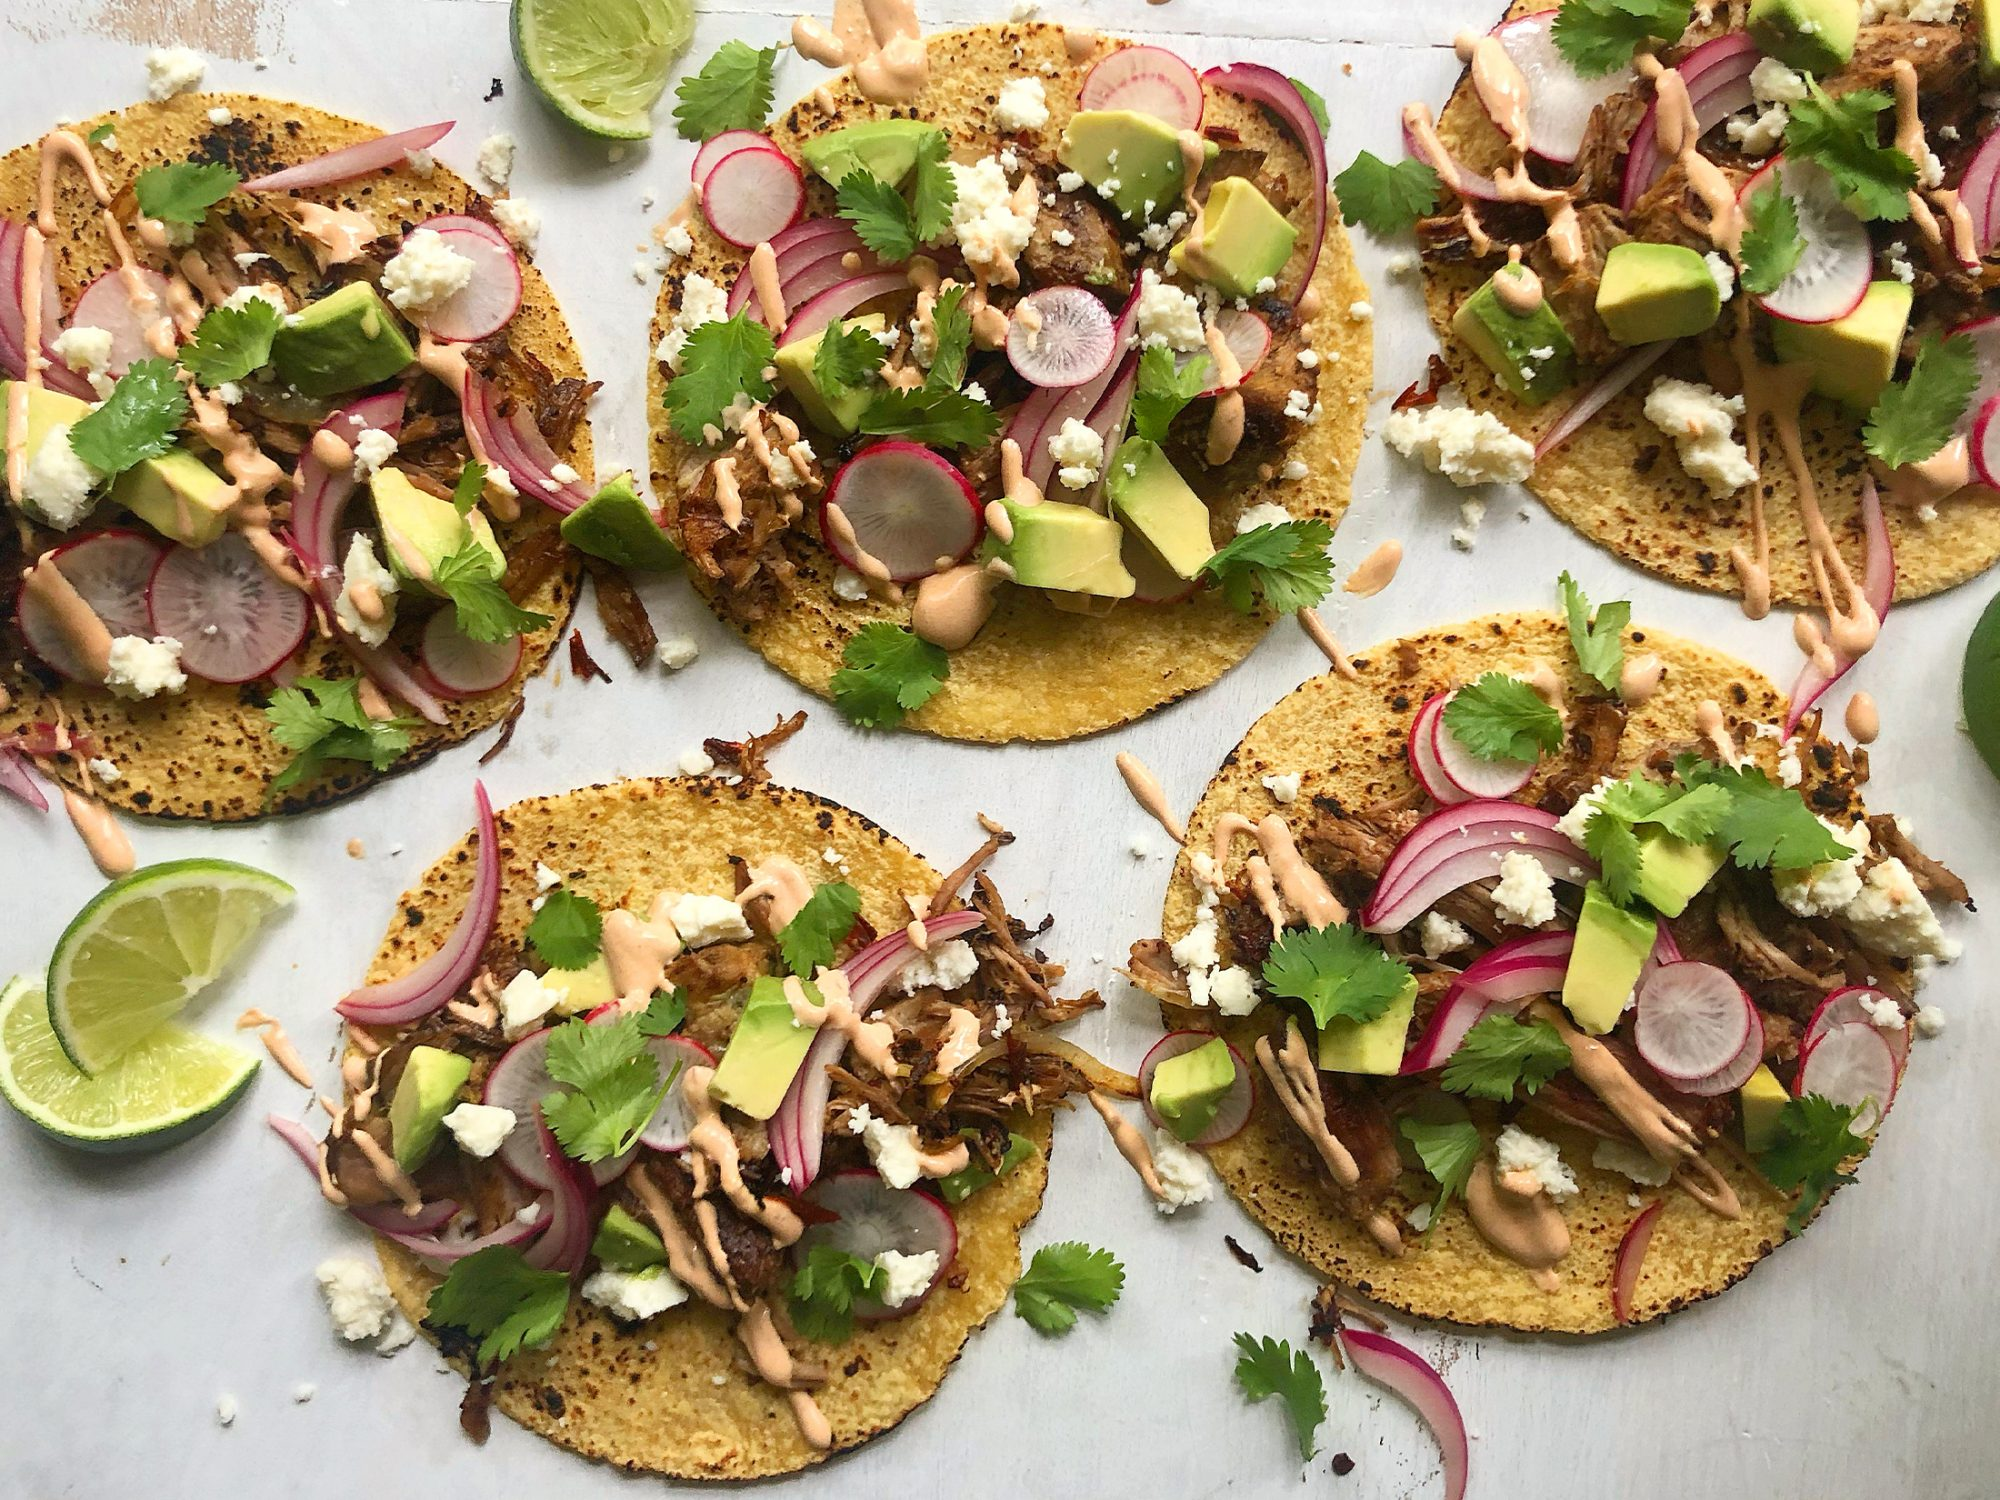 Carnitas Tacos With Chipotle Crema image